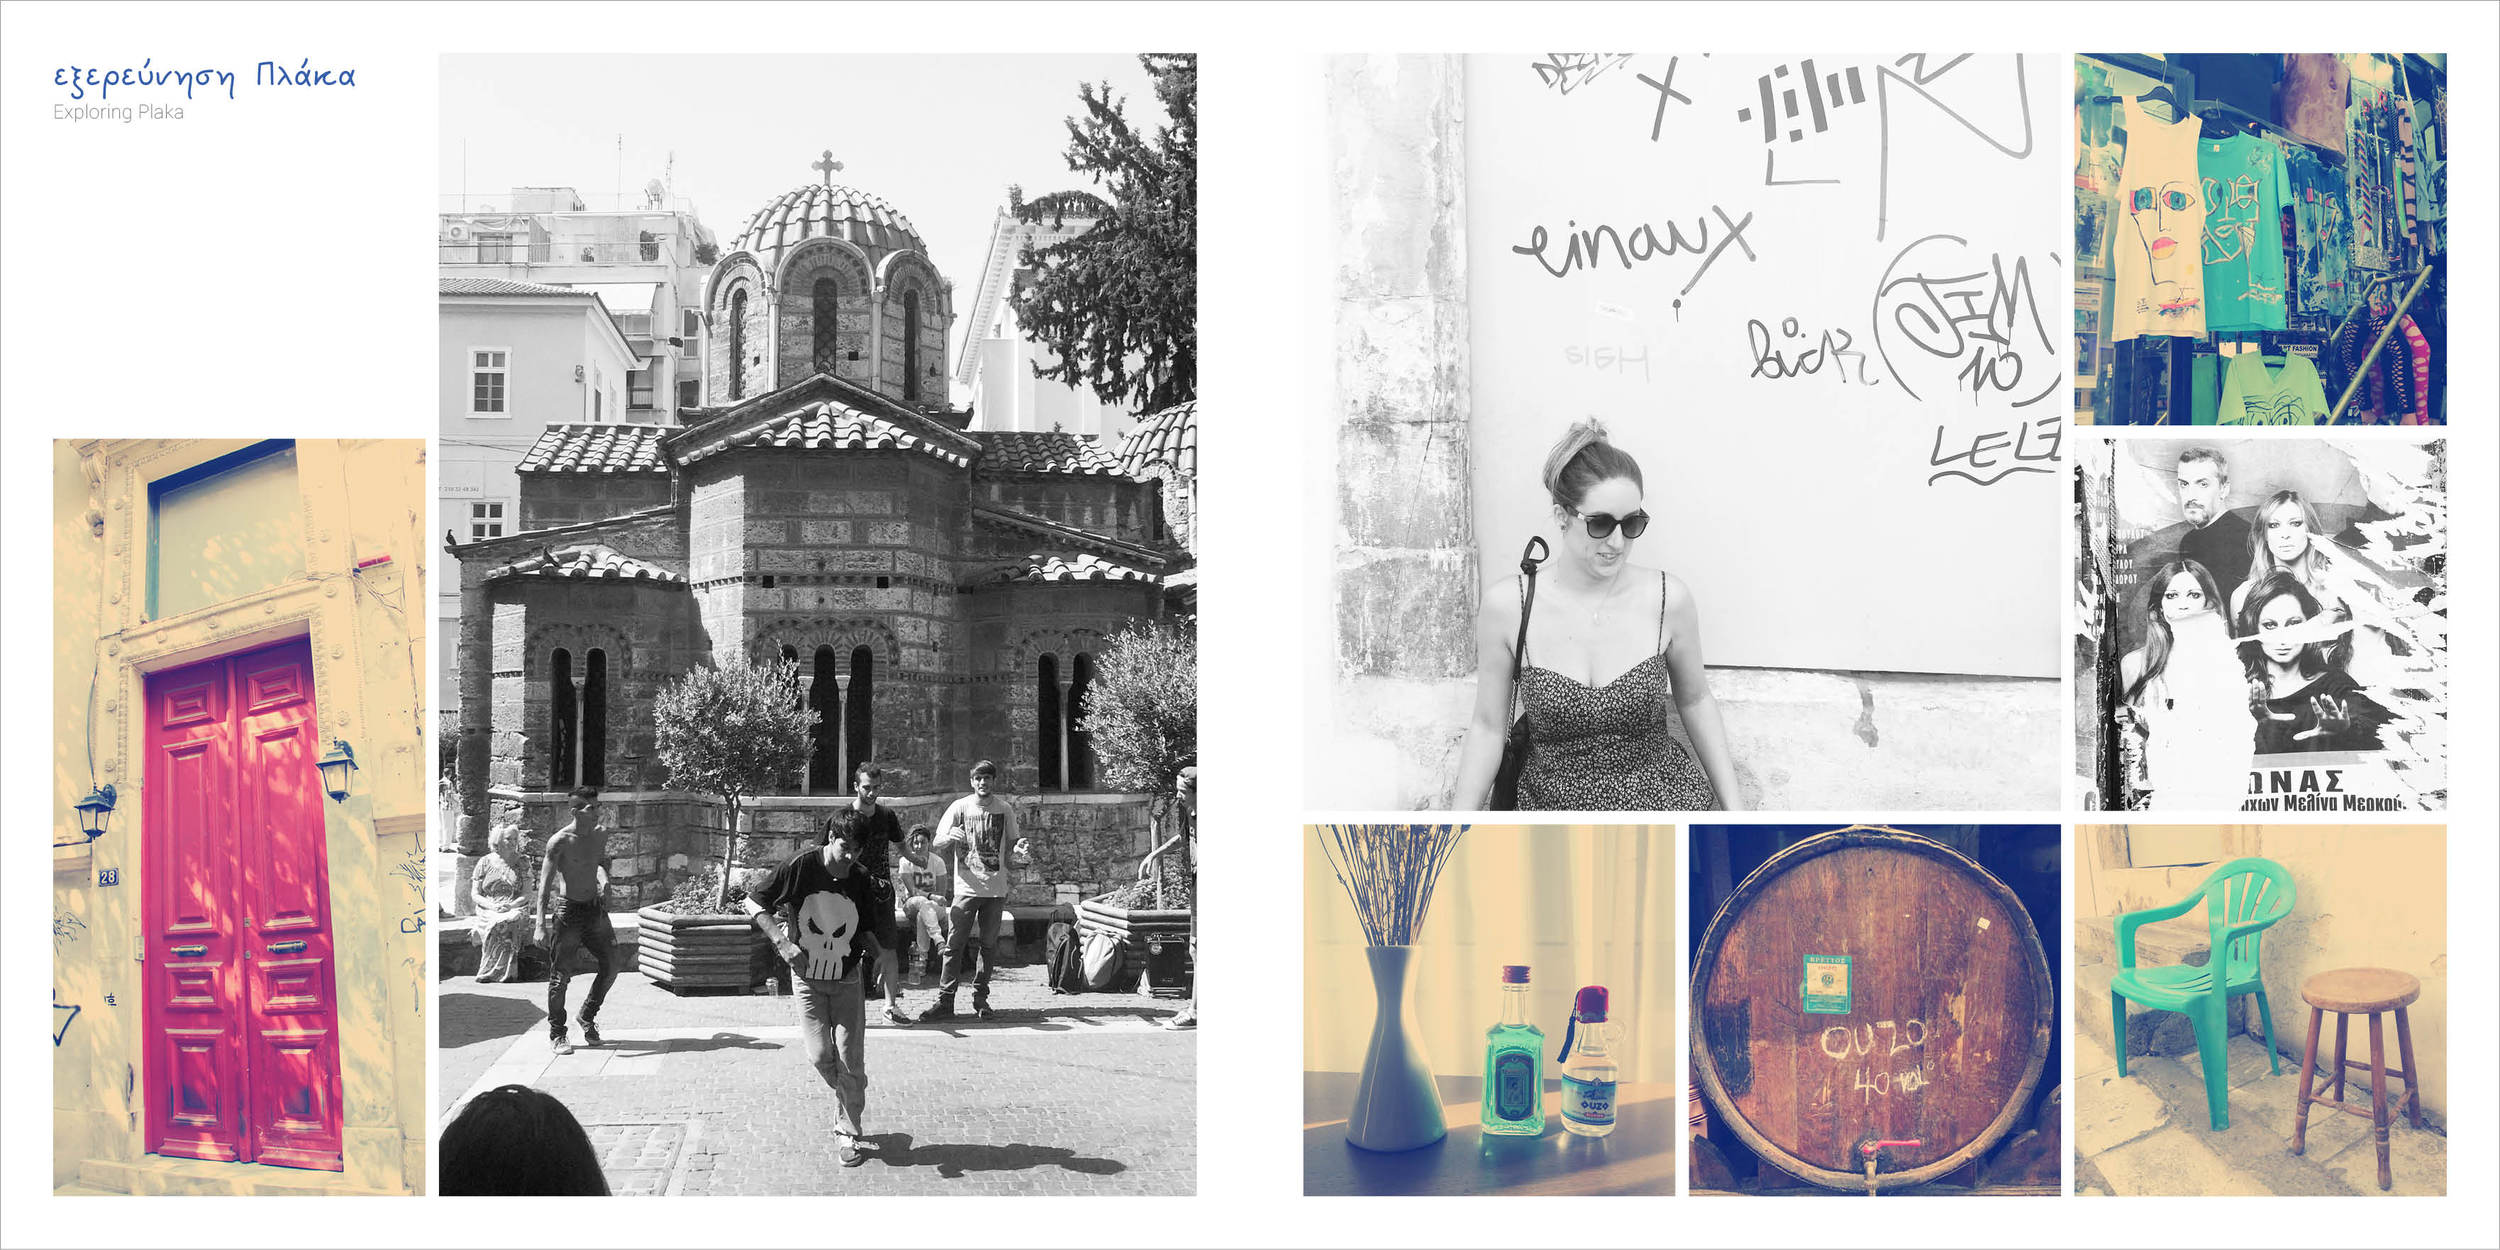 Greece 2014 Pages3.jpg